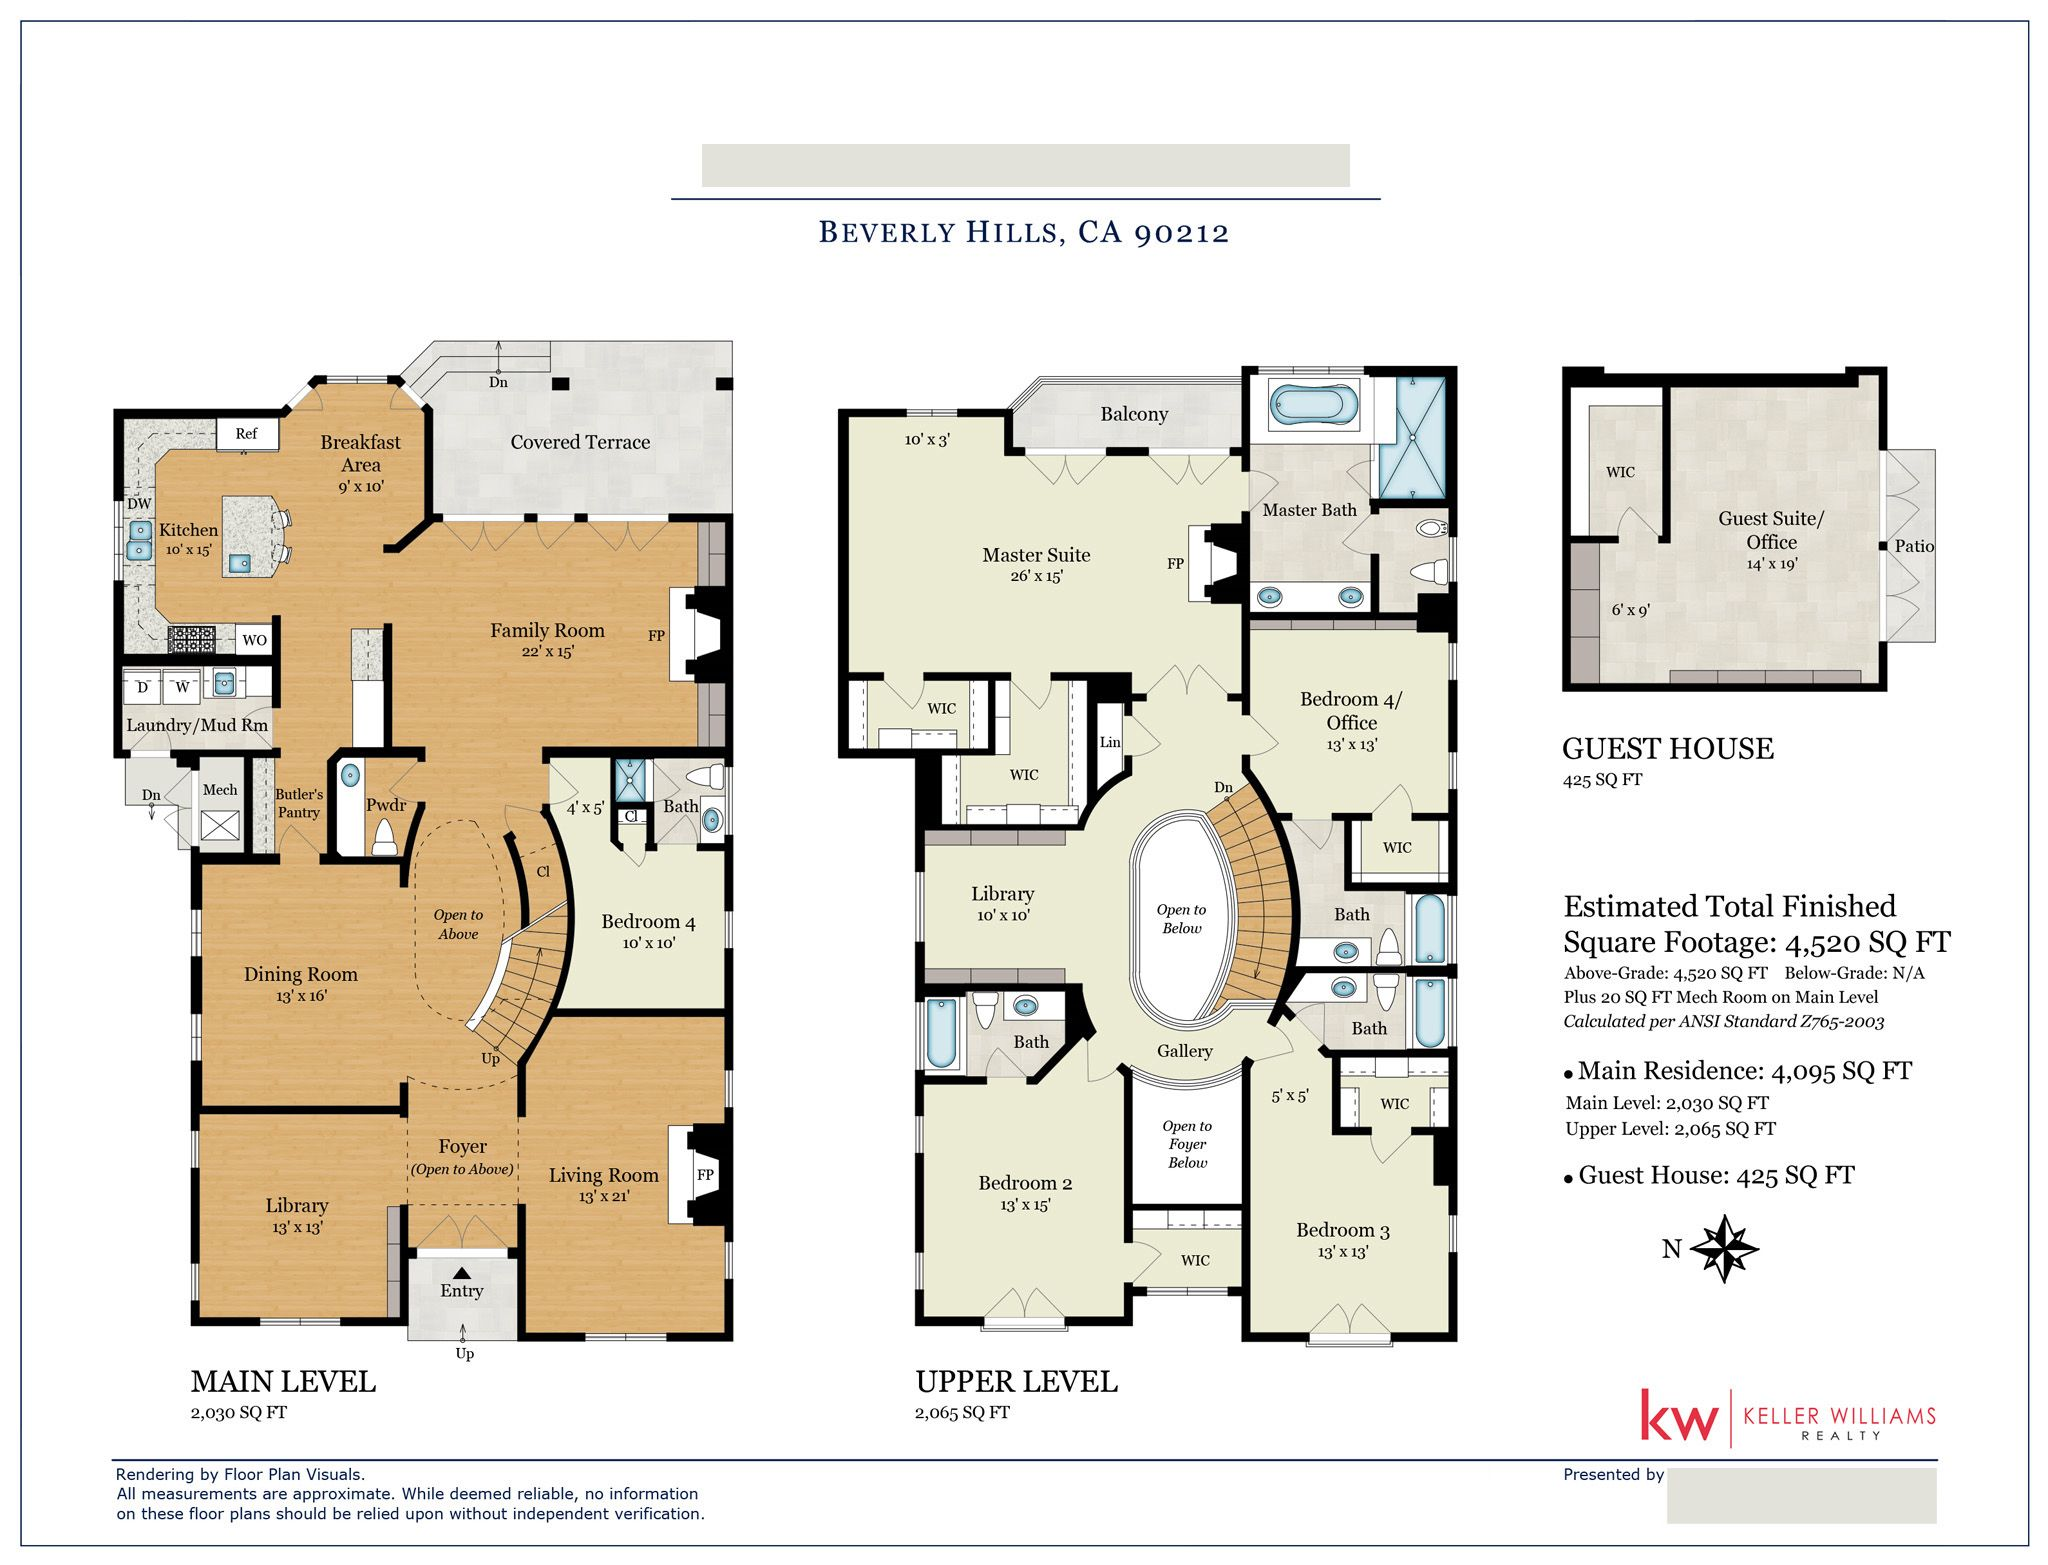 Location Beverly Hills Ca Property Type Single Family Home Size 4 520 Sq Ft O Mansion Floor Plan Floor Plans Modern Floor Plans